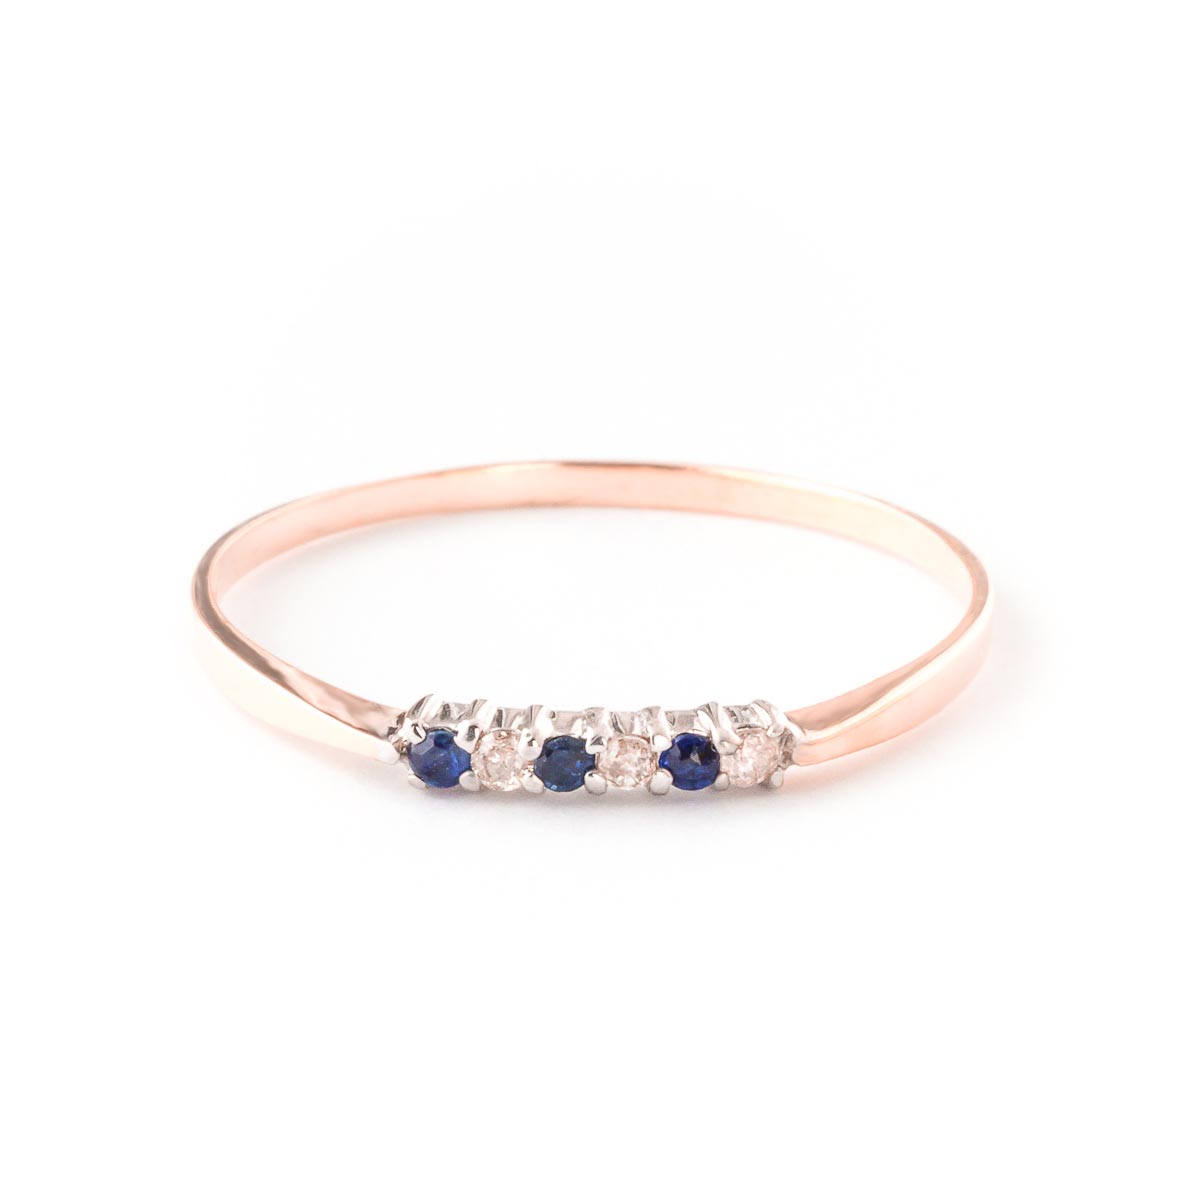 Diamond & Sapphire Eternity Ring in 9ct Rose Gold